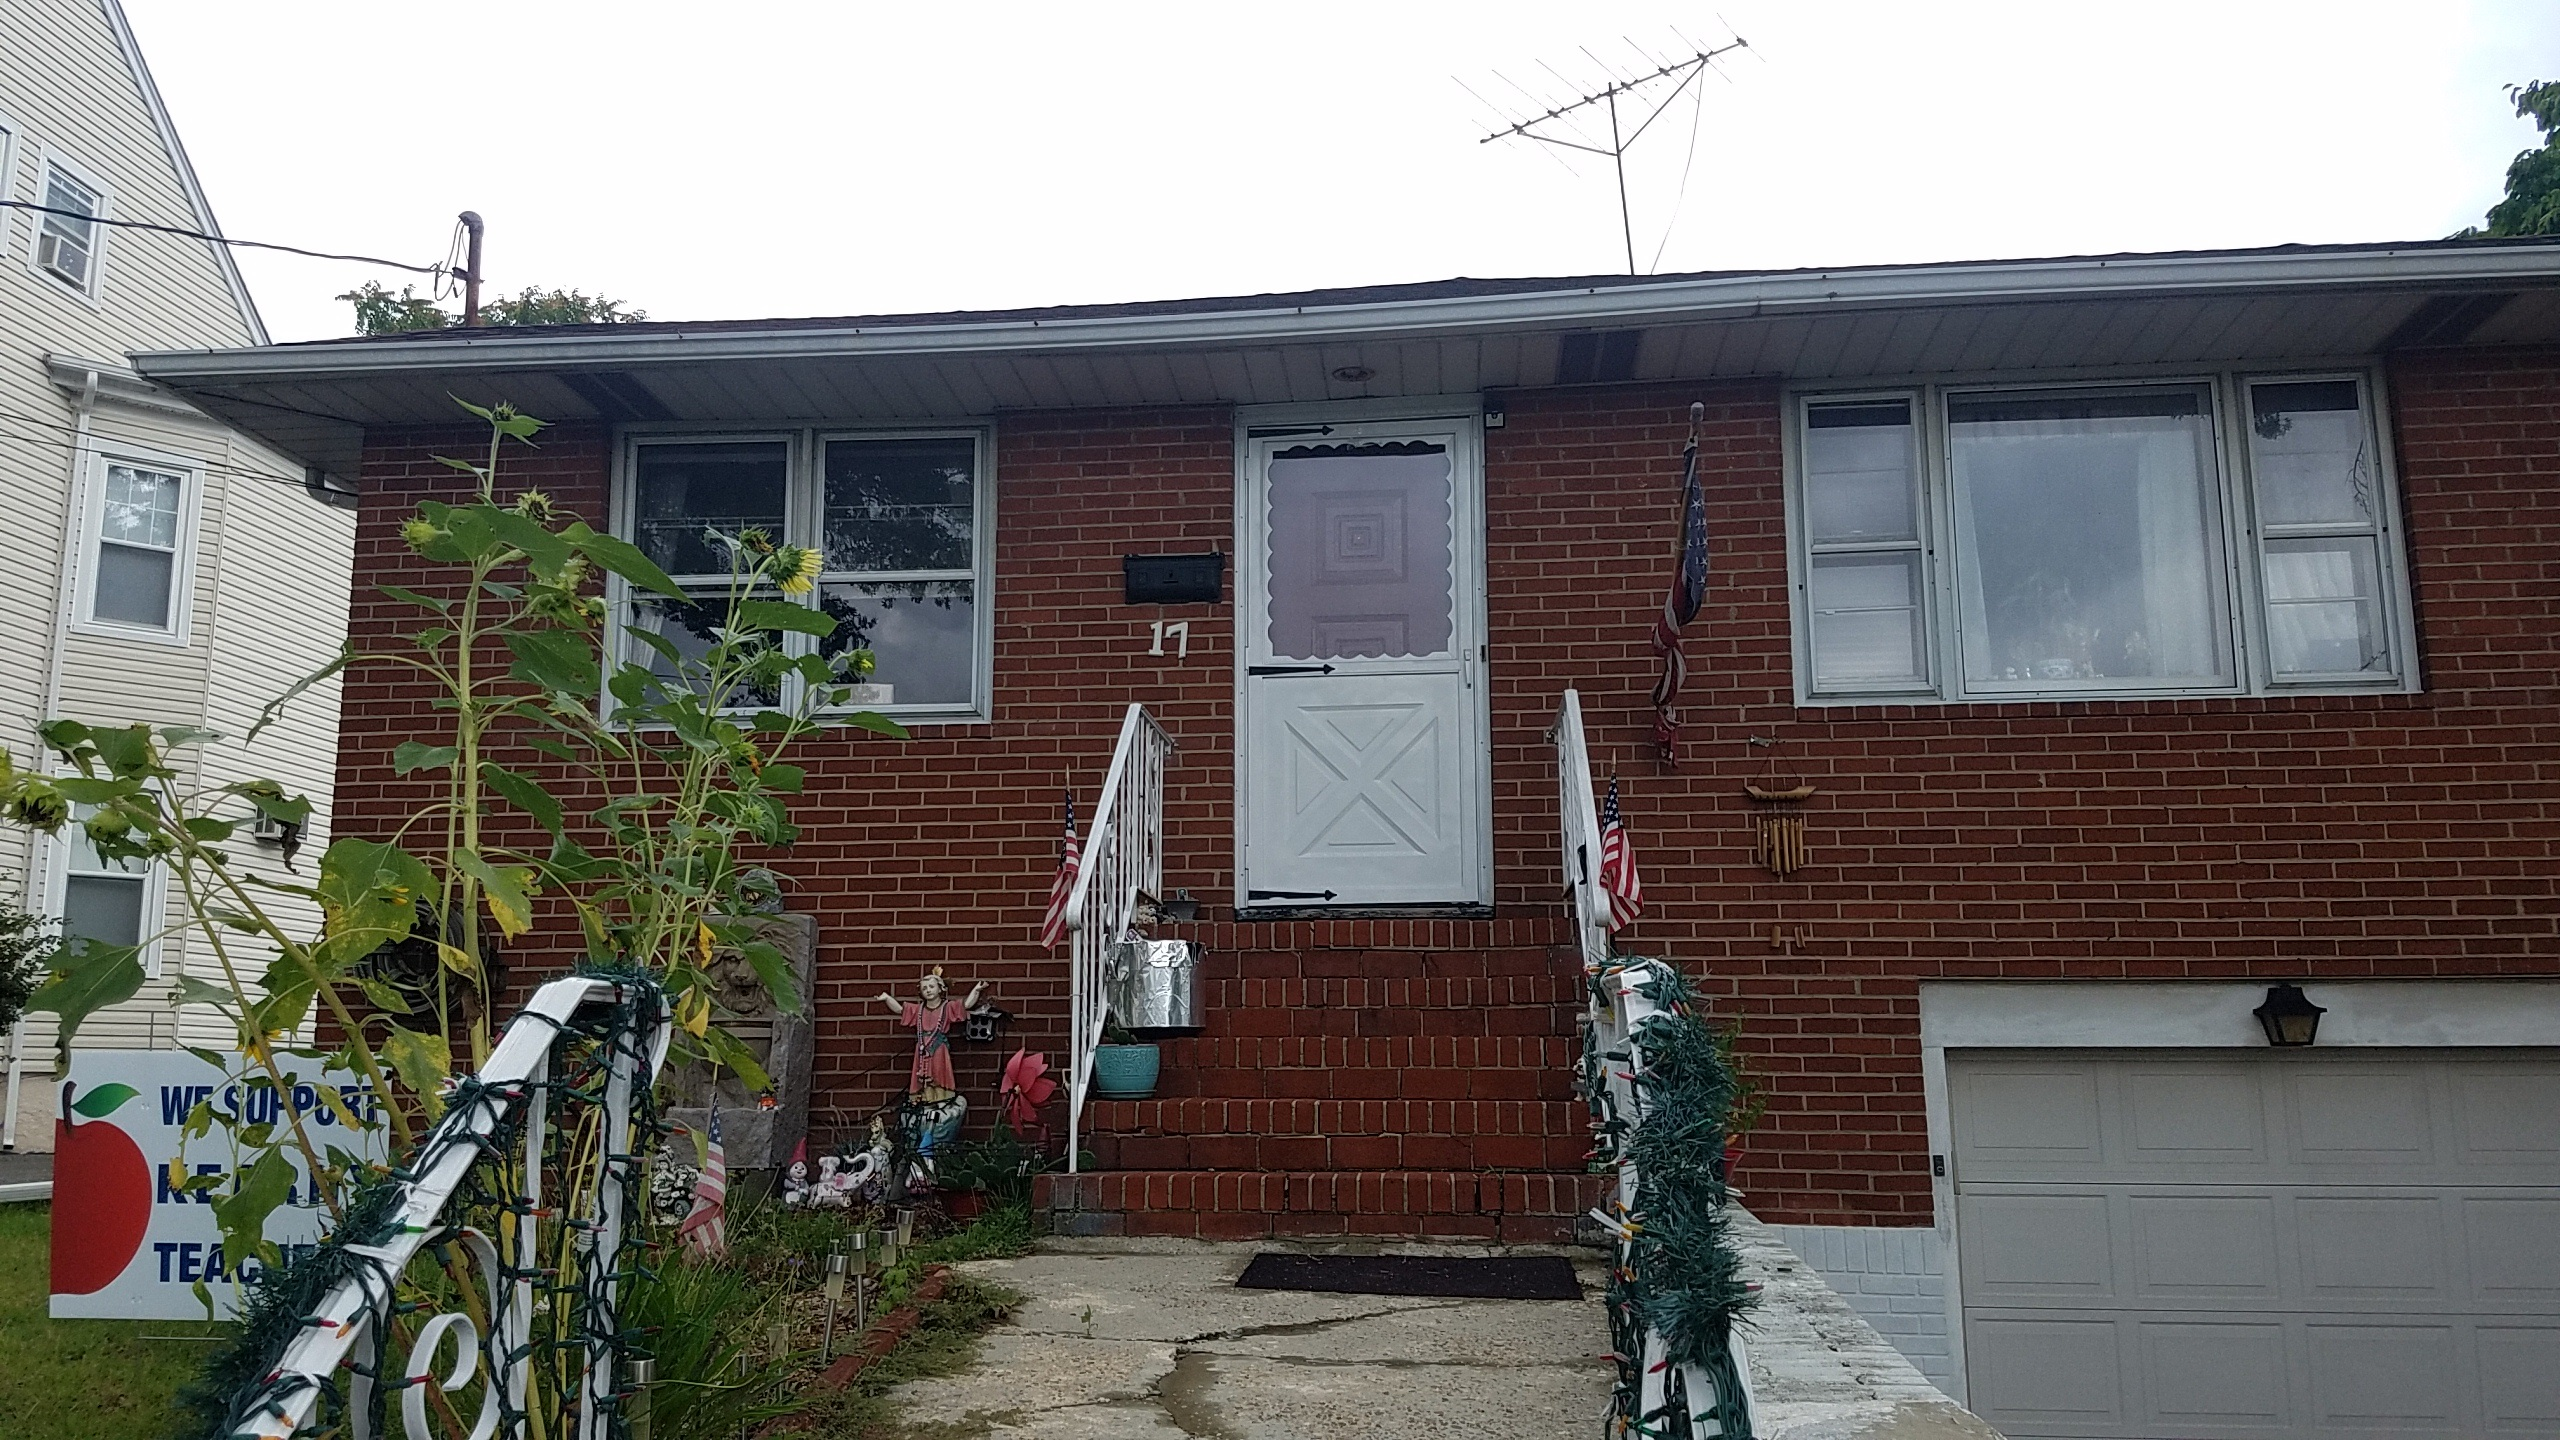 JUST REDUCED!! – 17 STUYVESANT AVE, KEARNY, NJ 07032 – $290,000